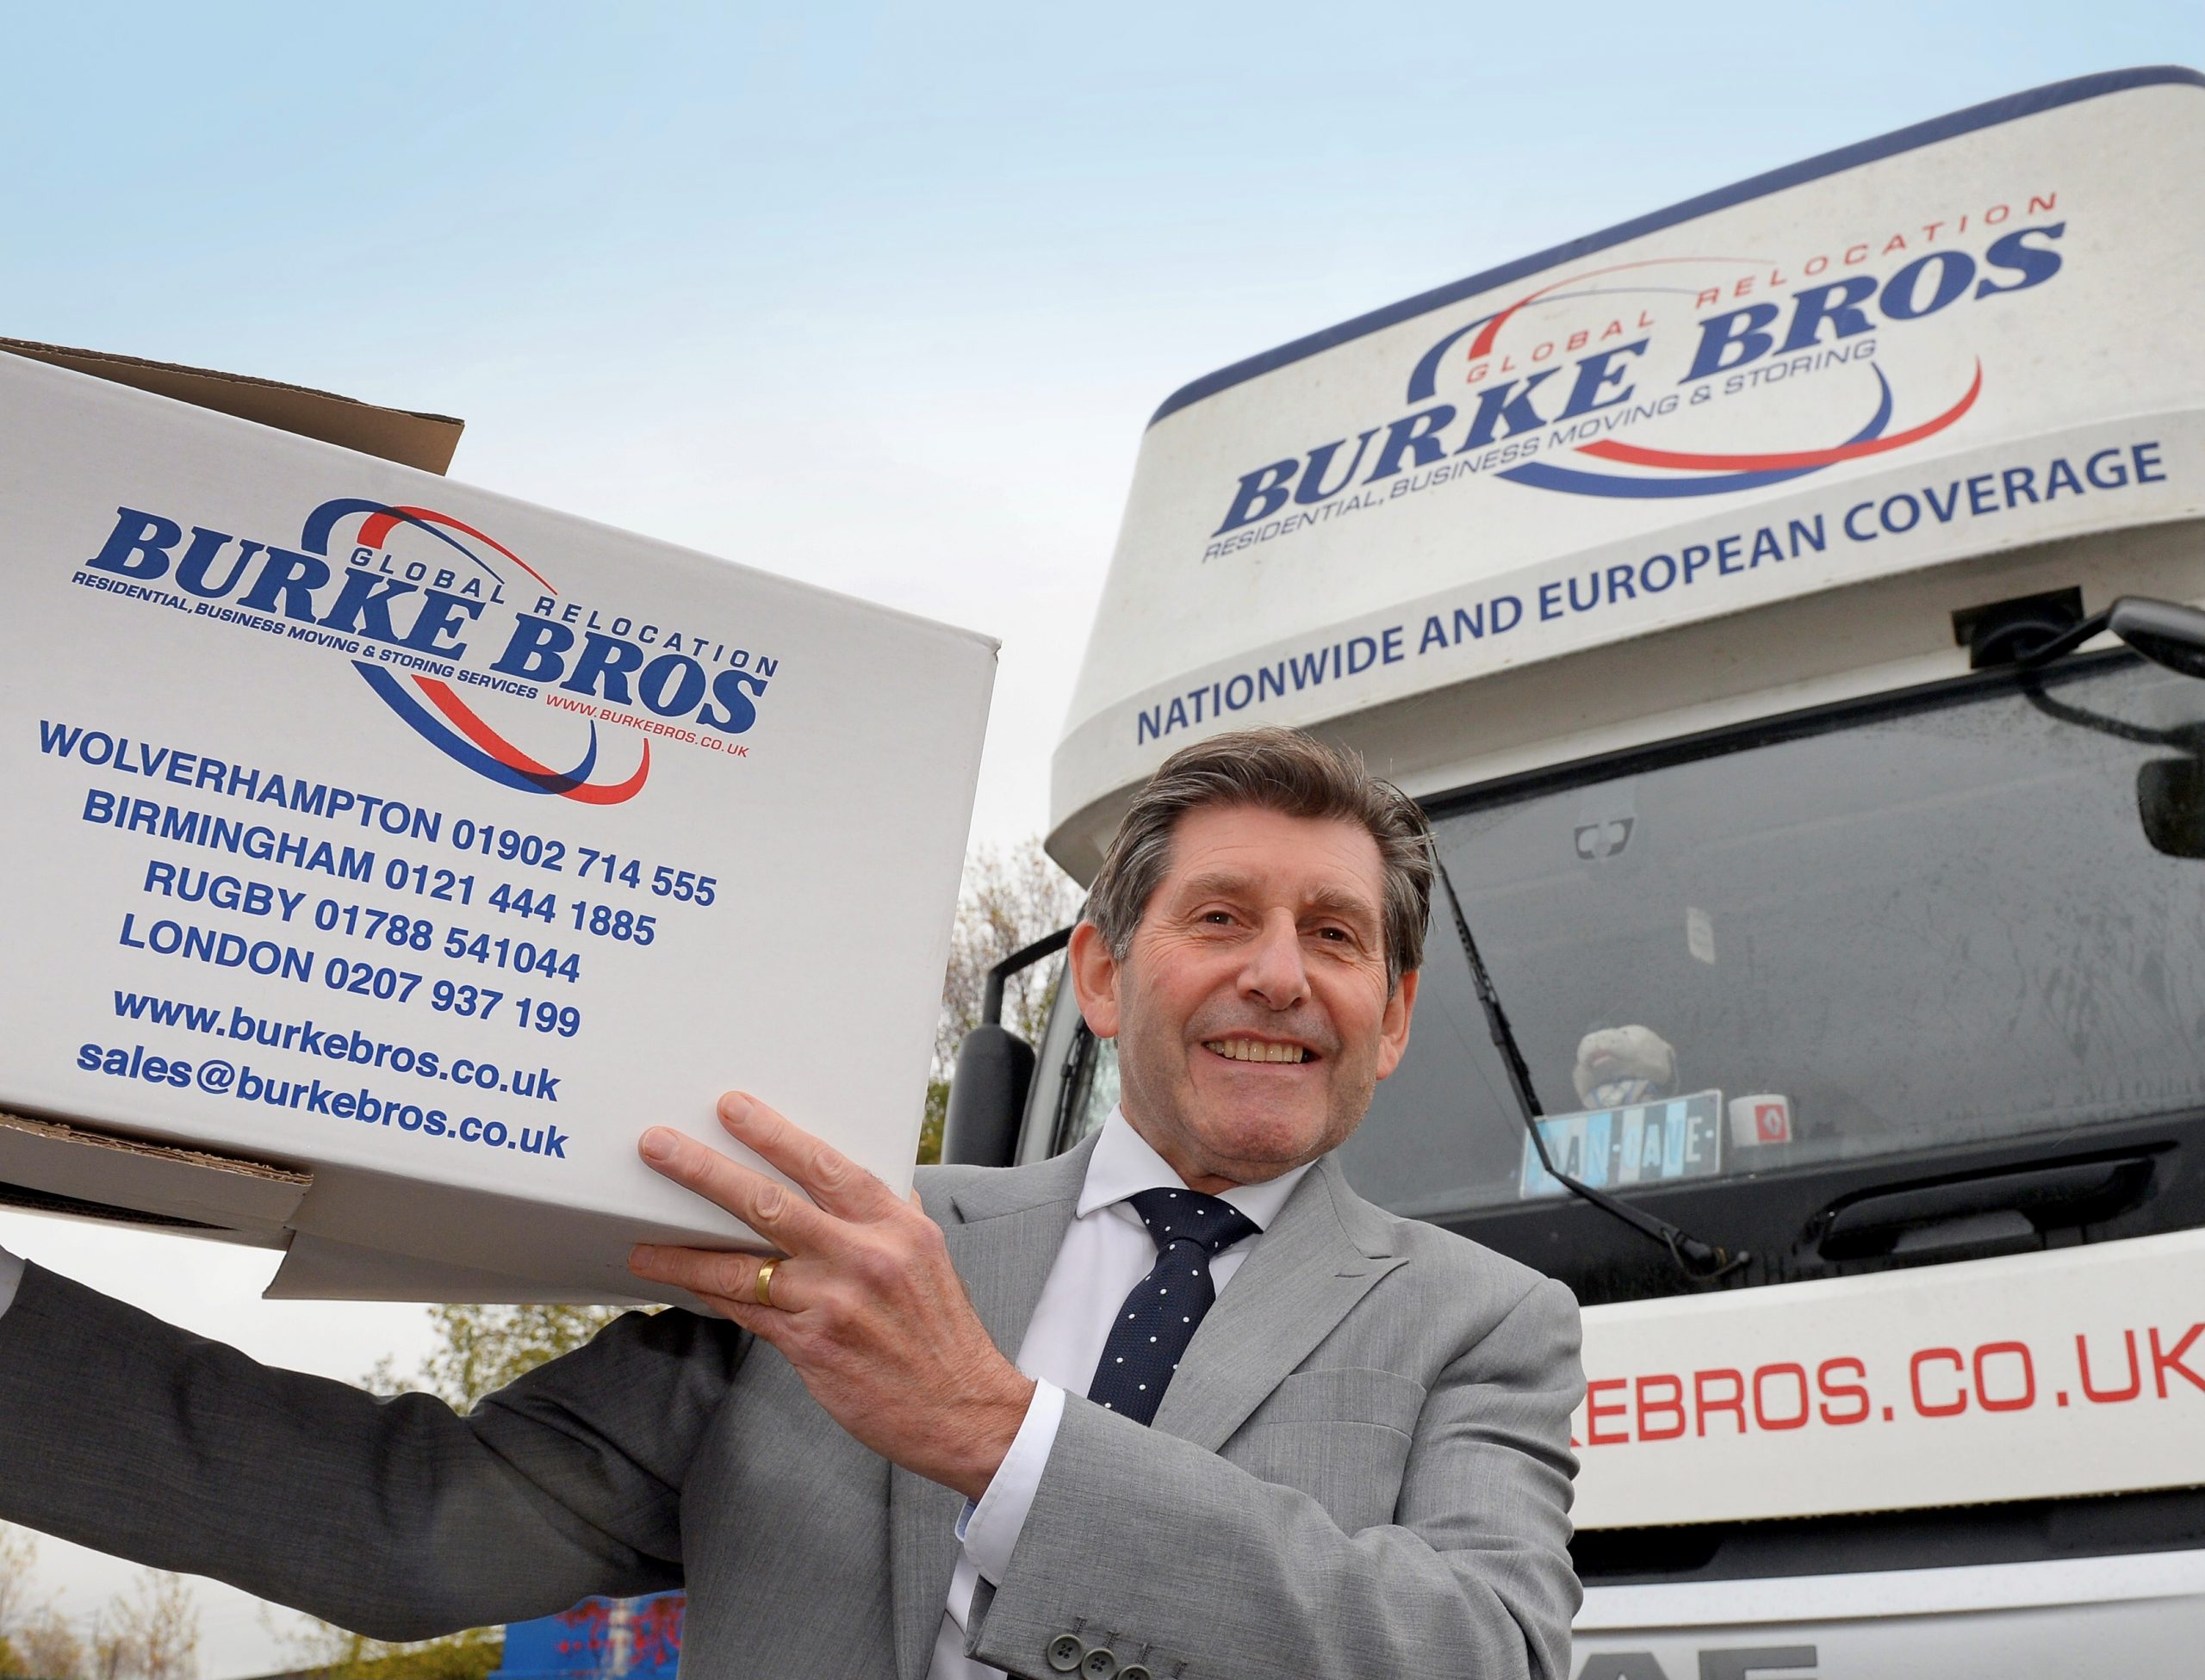 Gary Burke with boxes next to a company van